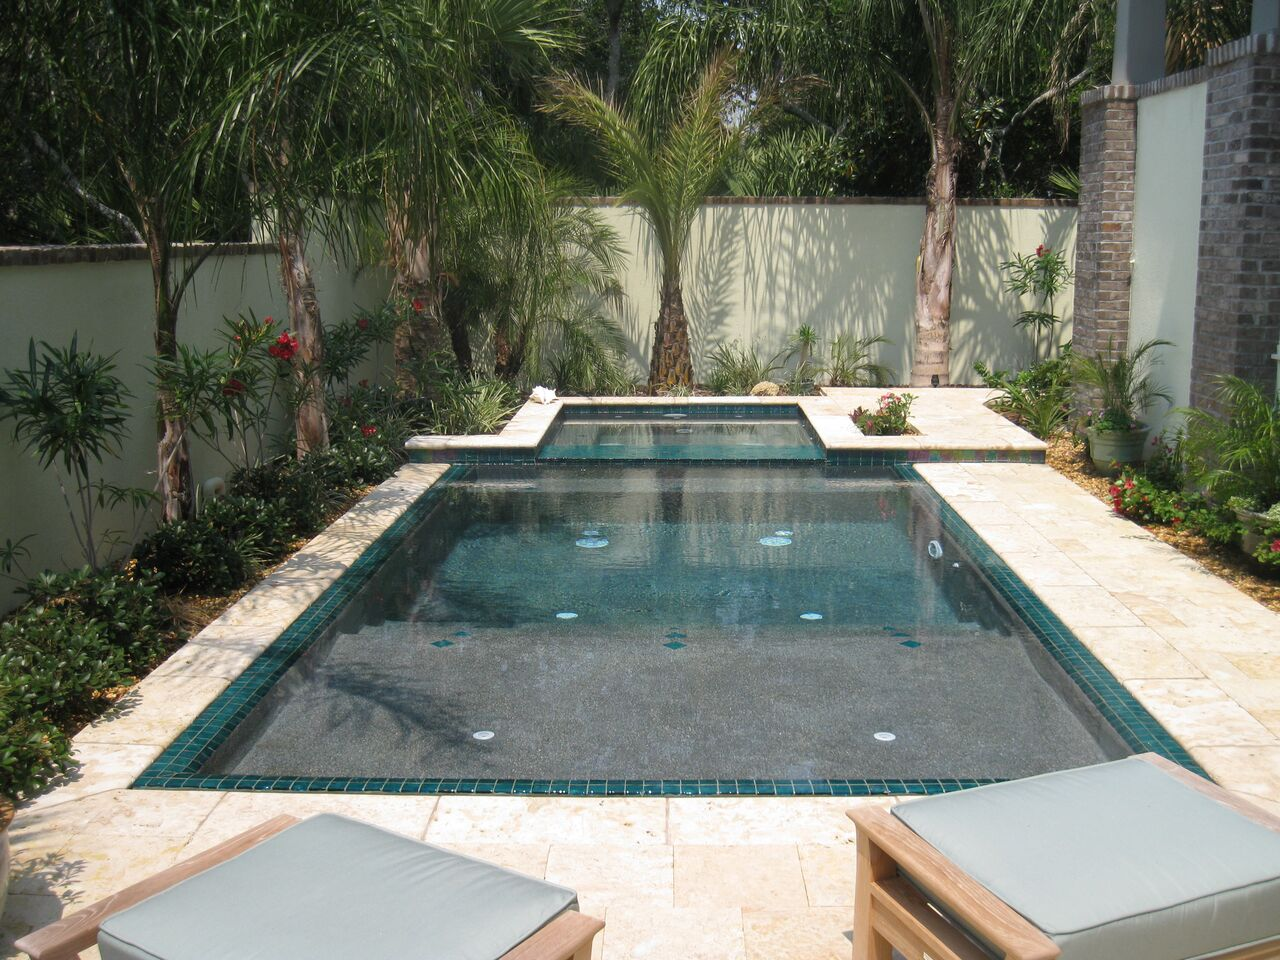 Preventing Chemical Gas Incidents in Automatically Fed Pools